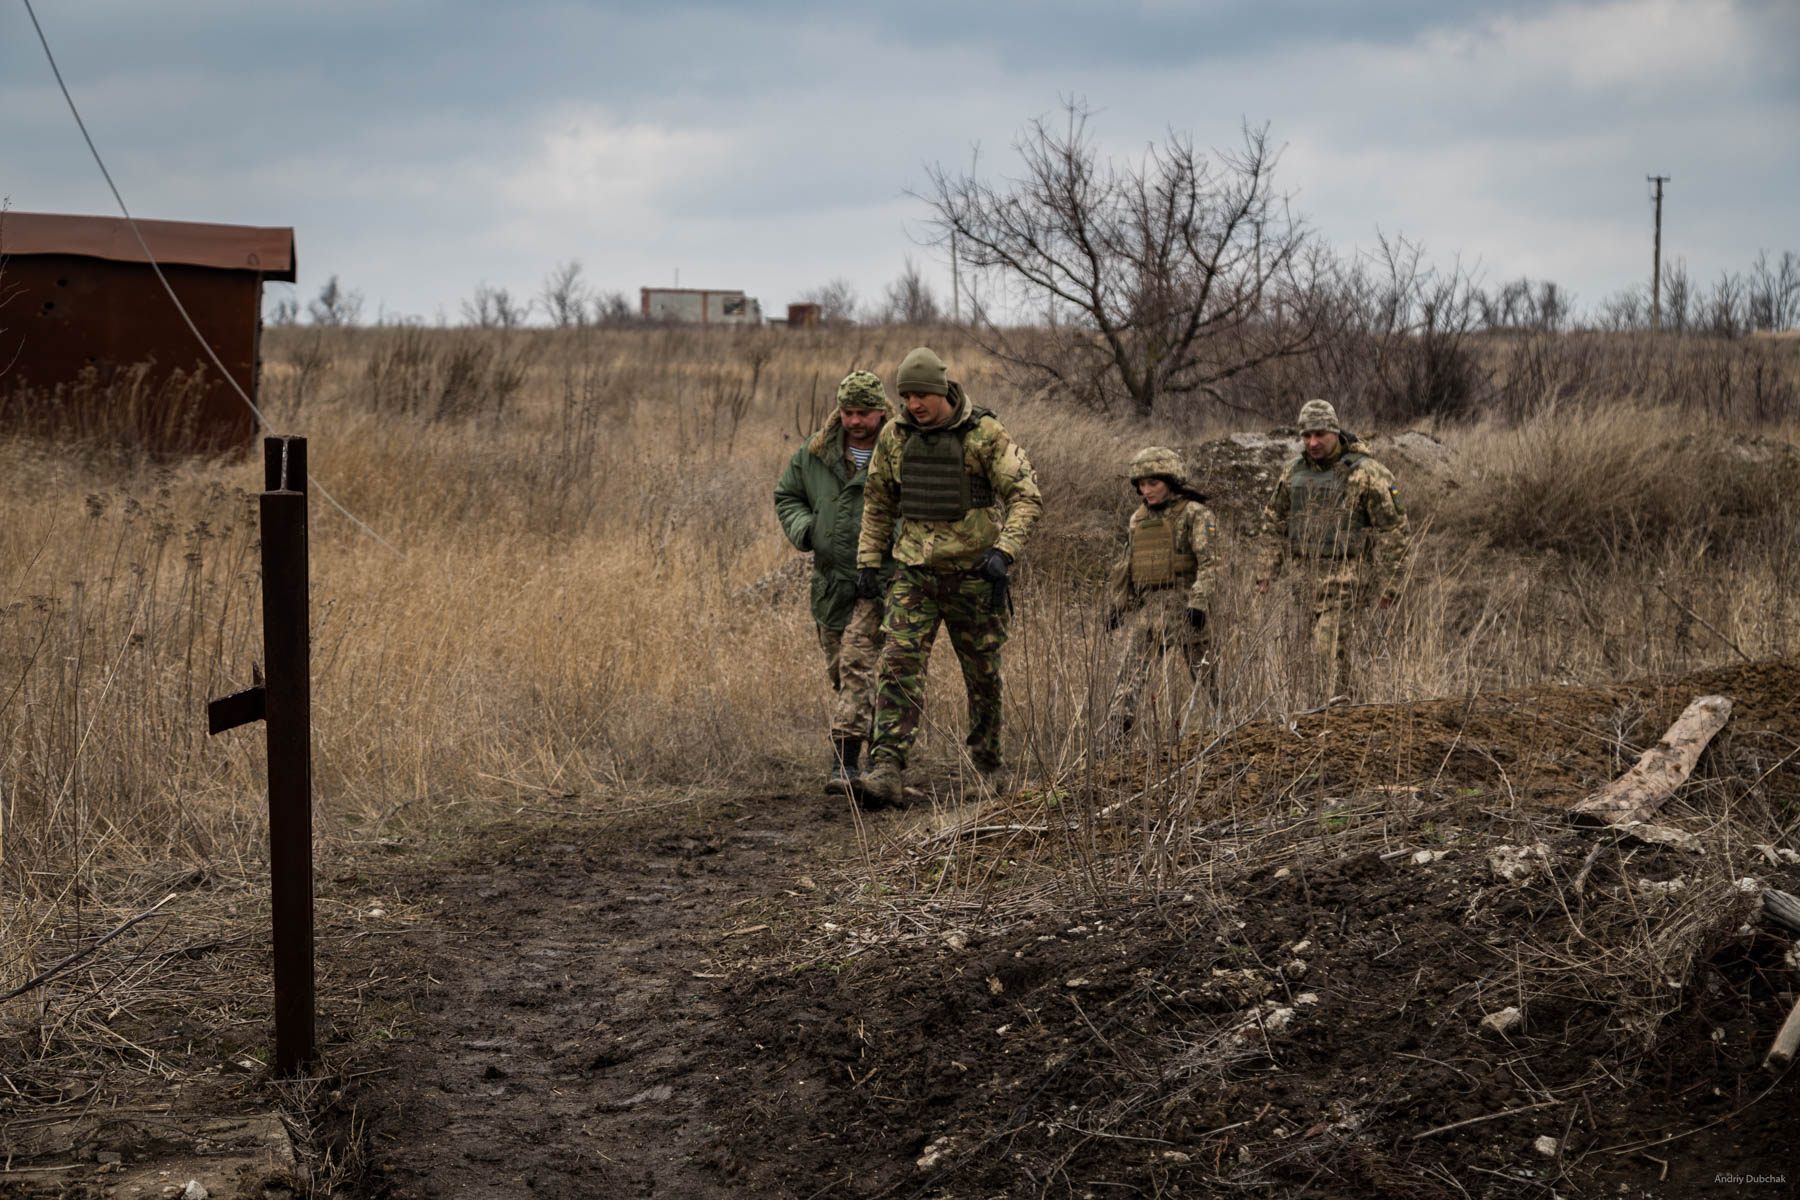 """""""The brass has arrived"""". Squadron commander, Victor Sikoza, company commander, Alexander, press officer ,Alexander Bessmertnya, and brigade commander, Dmitry Deliatitsky, are going to examine how they strengthened the recently occupied """"nuli"""" position on the forefront in Shirokine. Read: Brigade commander of Marines, Dmytro Deliatiatsky: """"We will definitely return to our home, Crimea"""" - https://goo.gl/TsSs4j Shirokine, March 2018"""